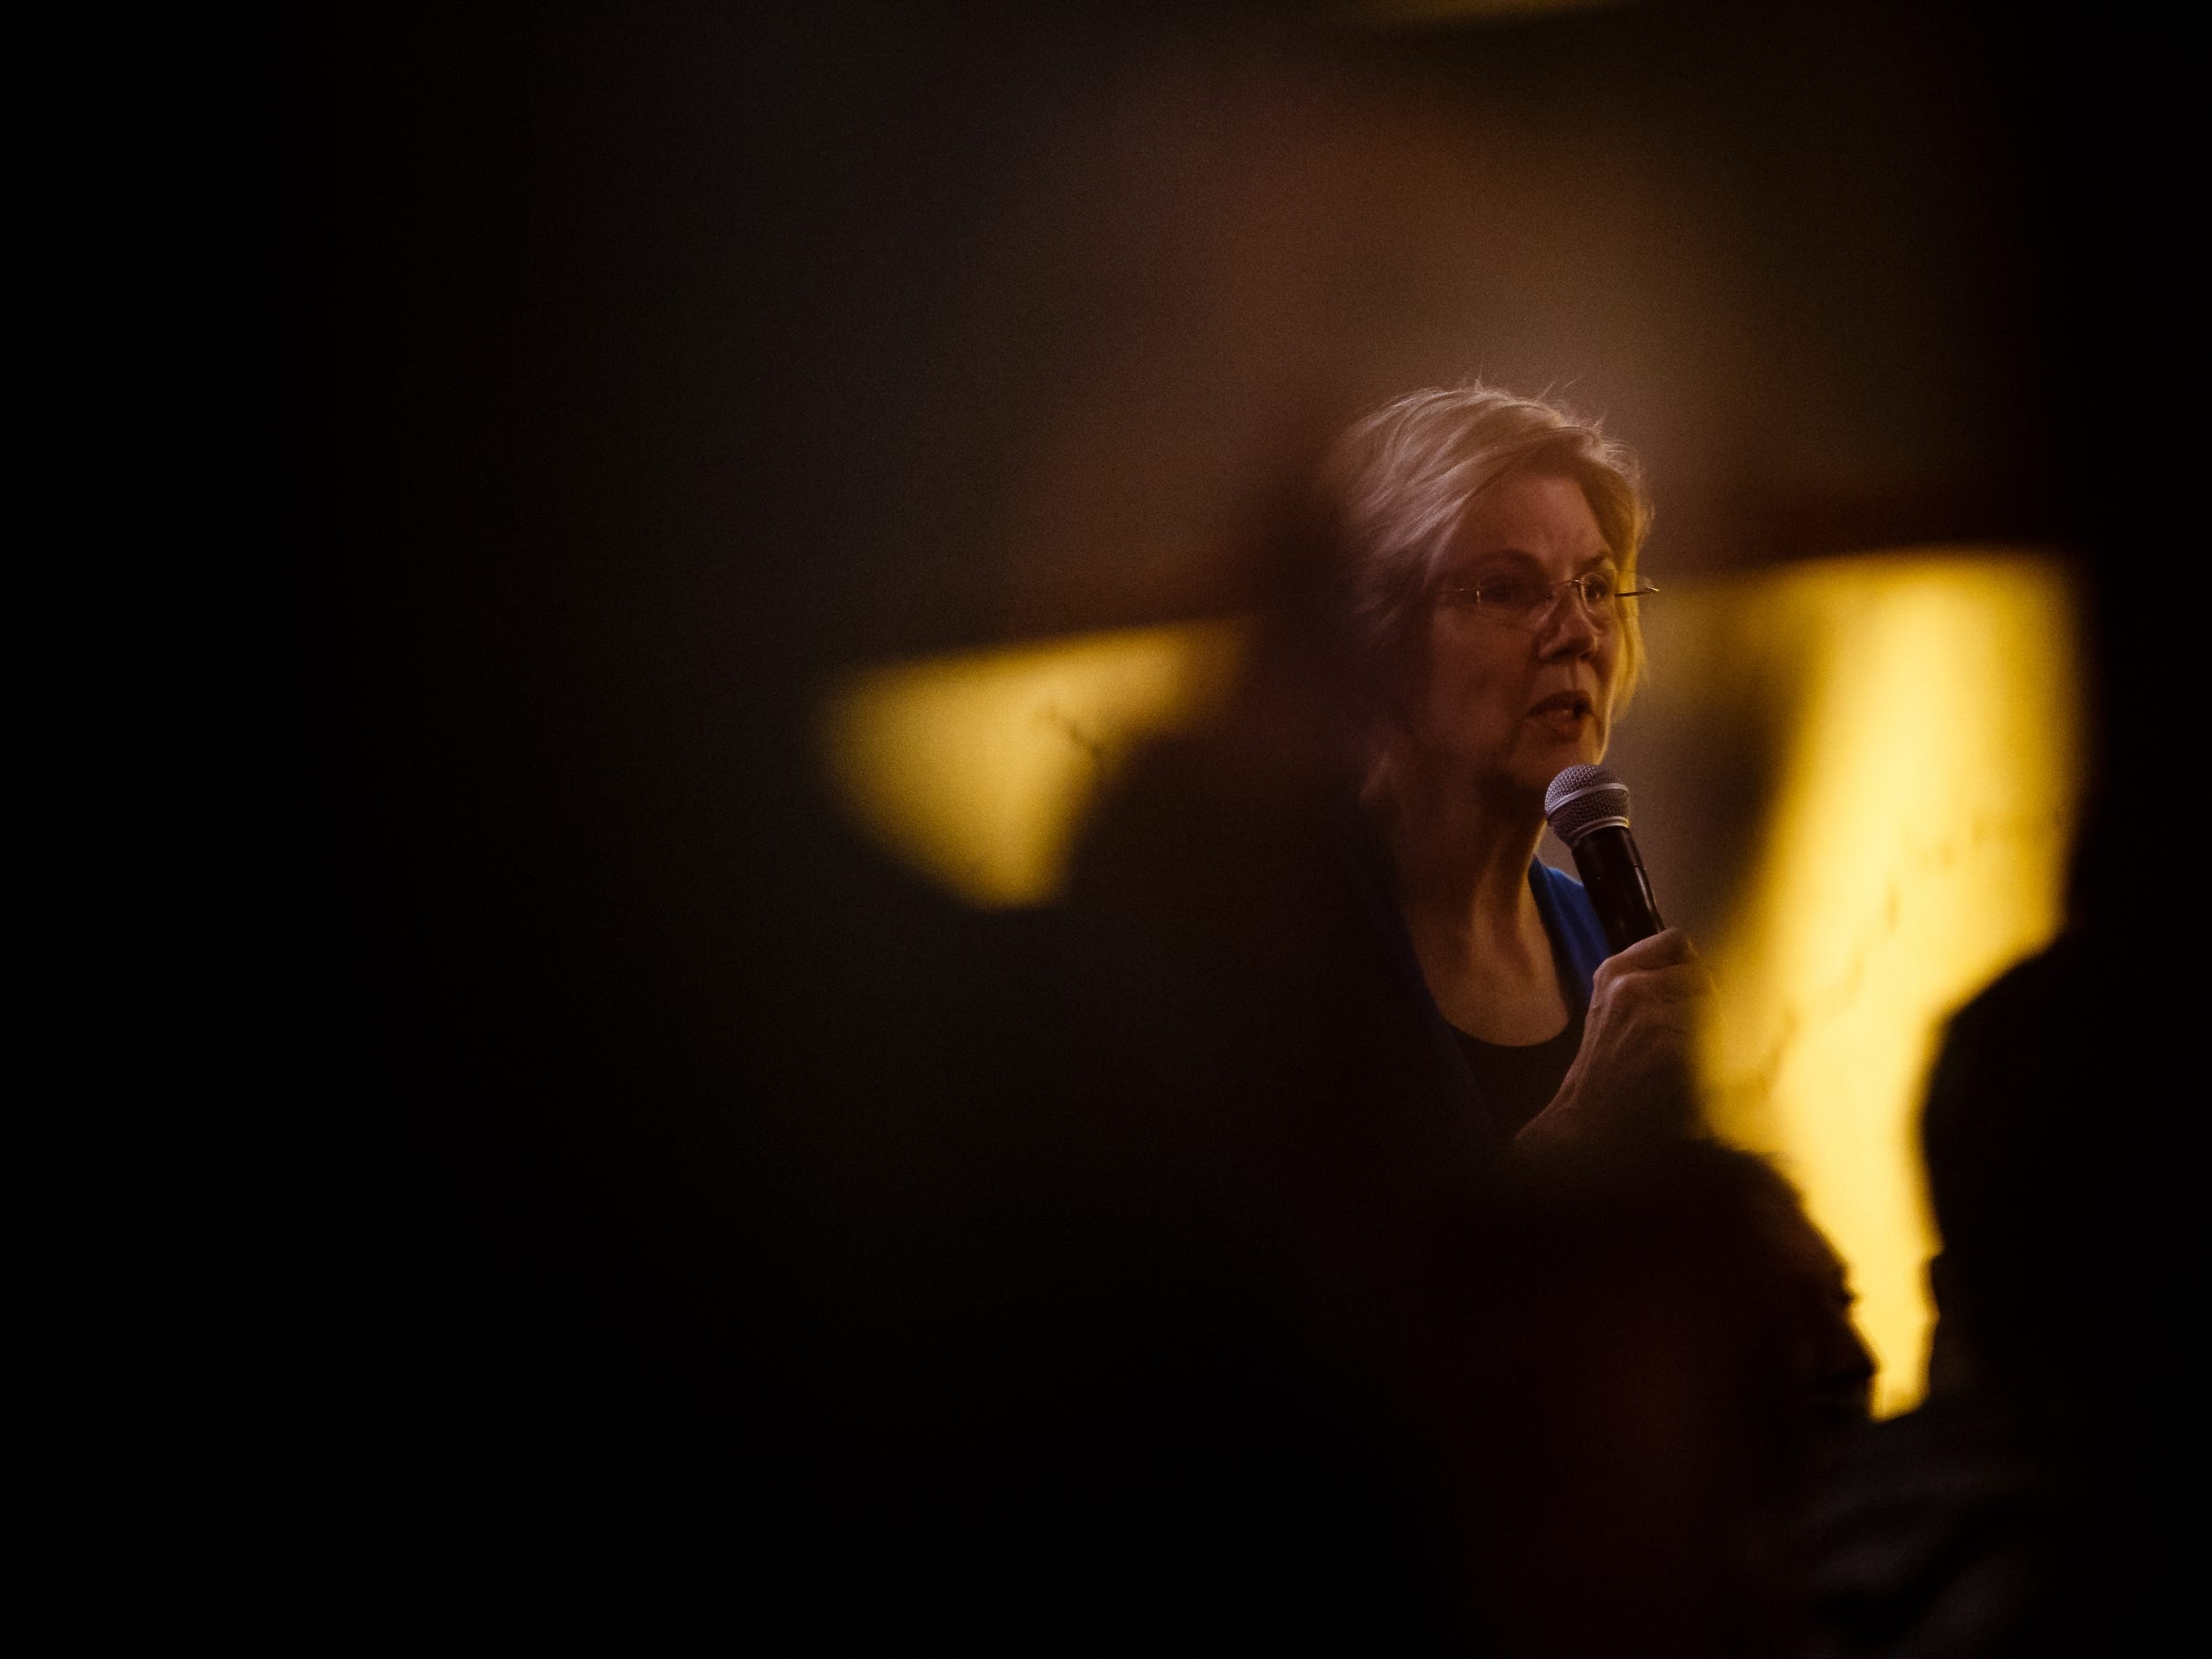 Sen. Elizabeth Warren speaks during an event on her first trip through Iowa as a possible 2020 presidential candidate on Friday, Jan. 4, 2019, in Council Bluffs.